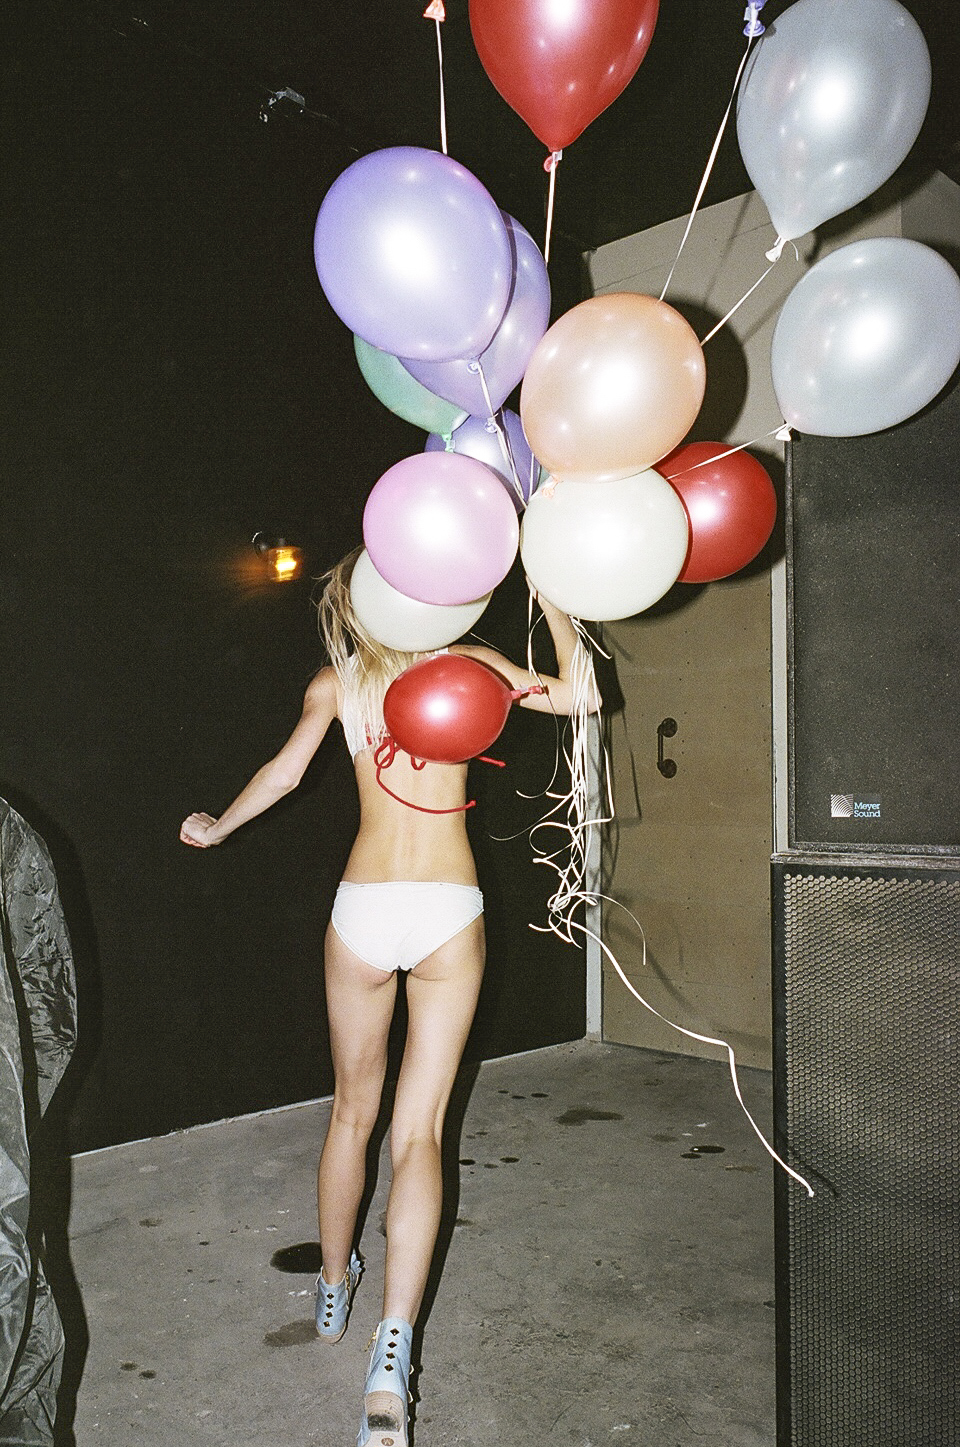 blonde-with-ballons-running